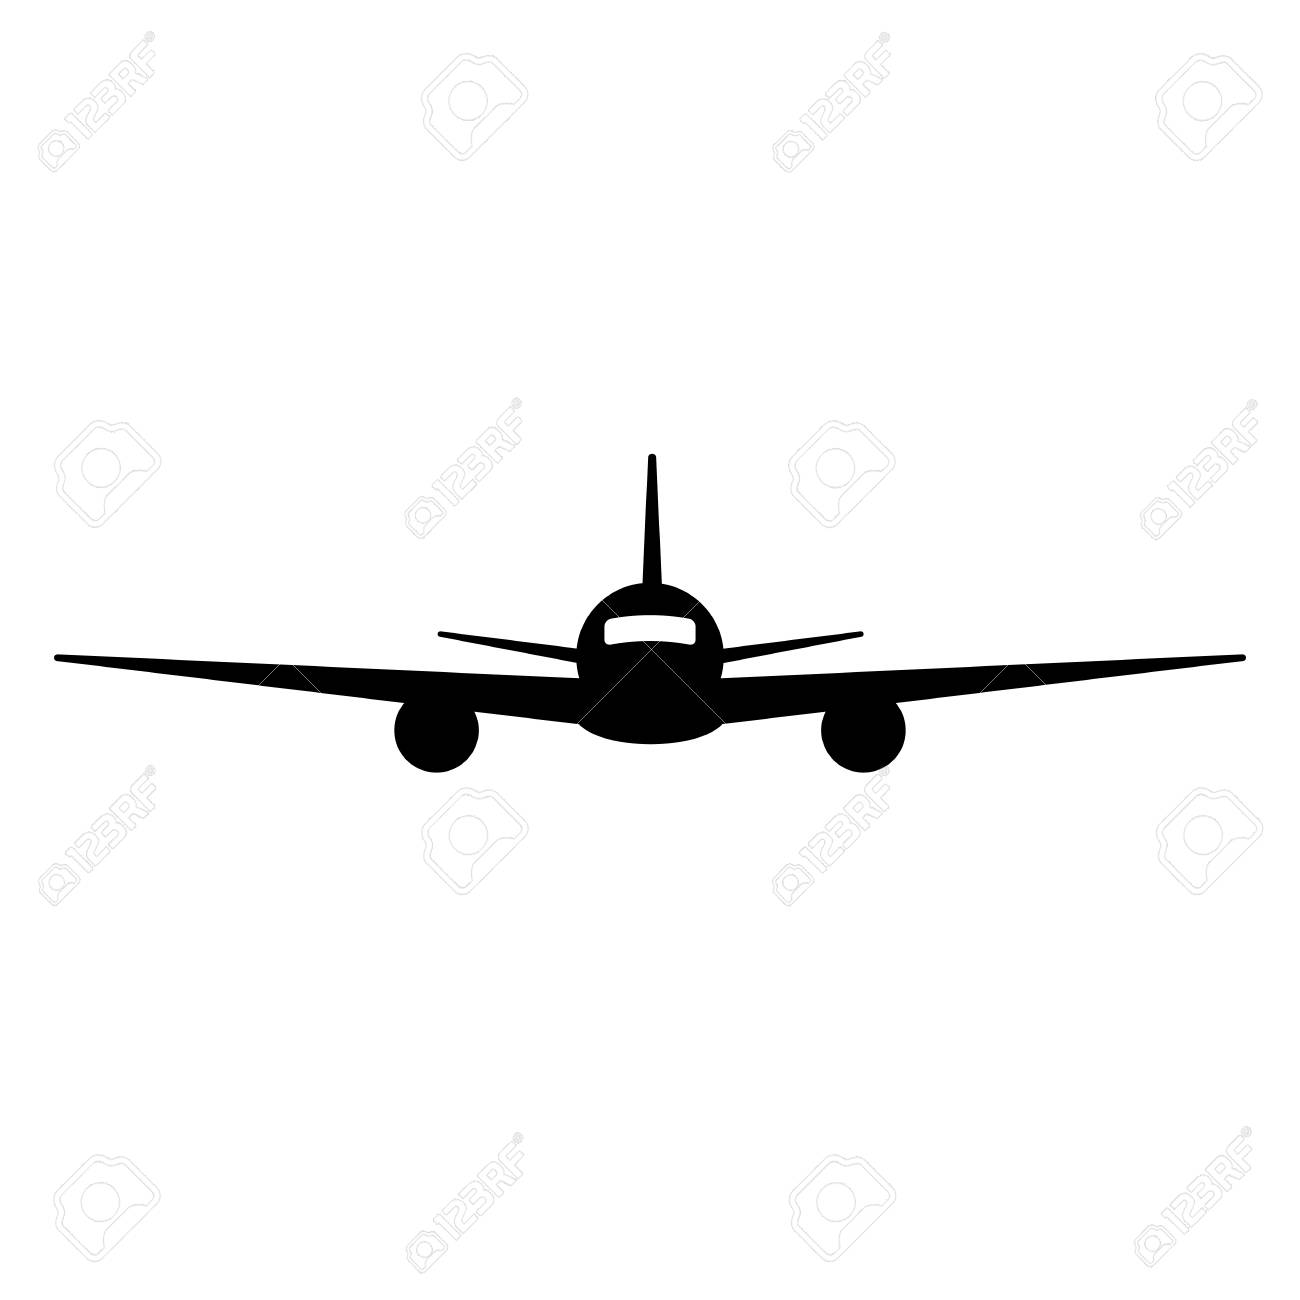 Plane Silhouette Front.